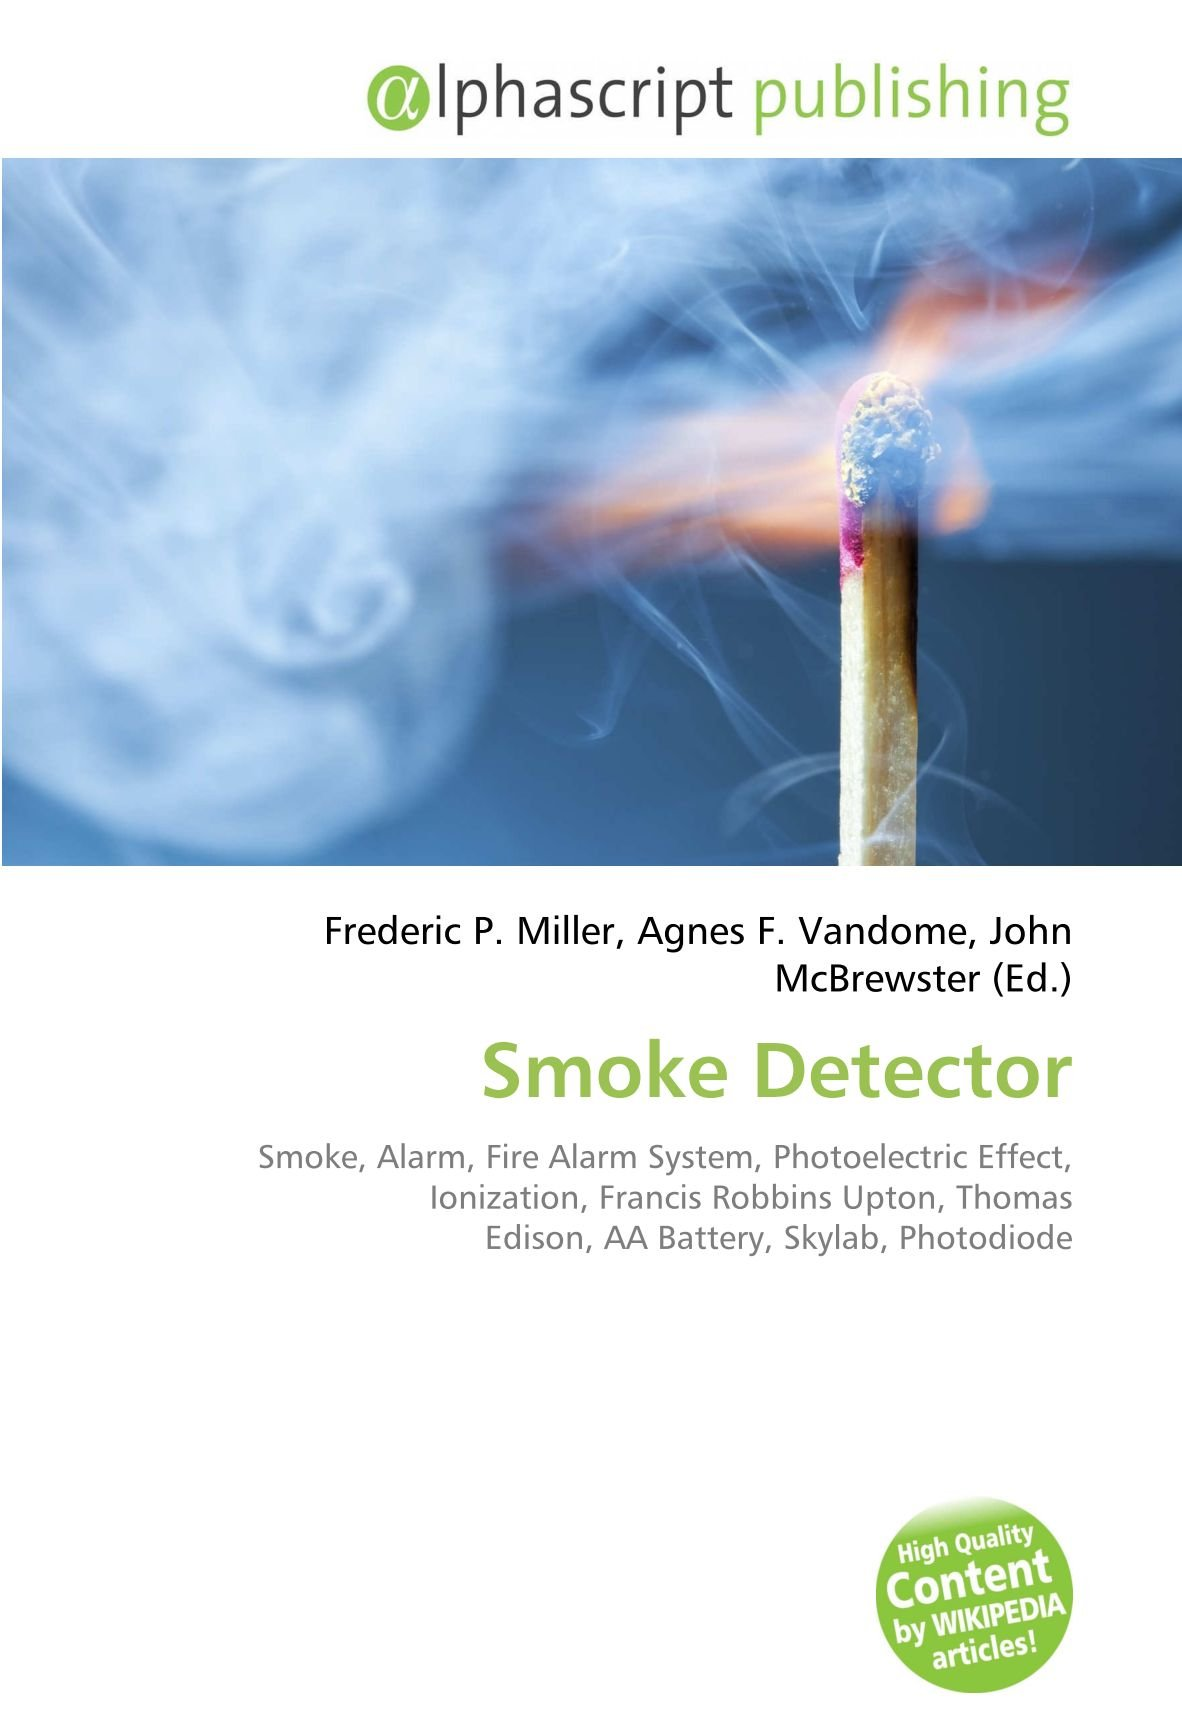 Smoke Detector: Smoke, Alarm, Fire Alarm System, Photoelectric Effect, Ionization, Francis Robbins Upton, Thomas Edison, AA Battery, Skylab, ...